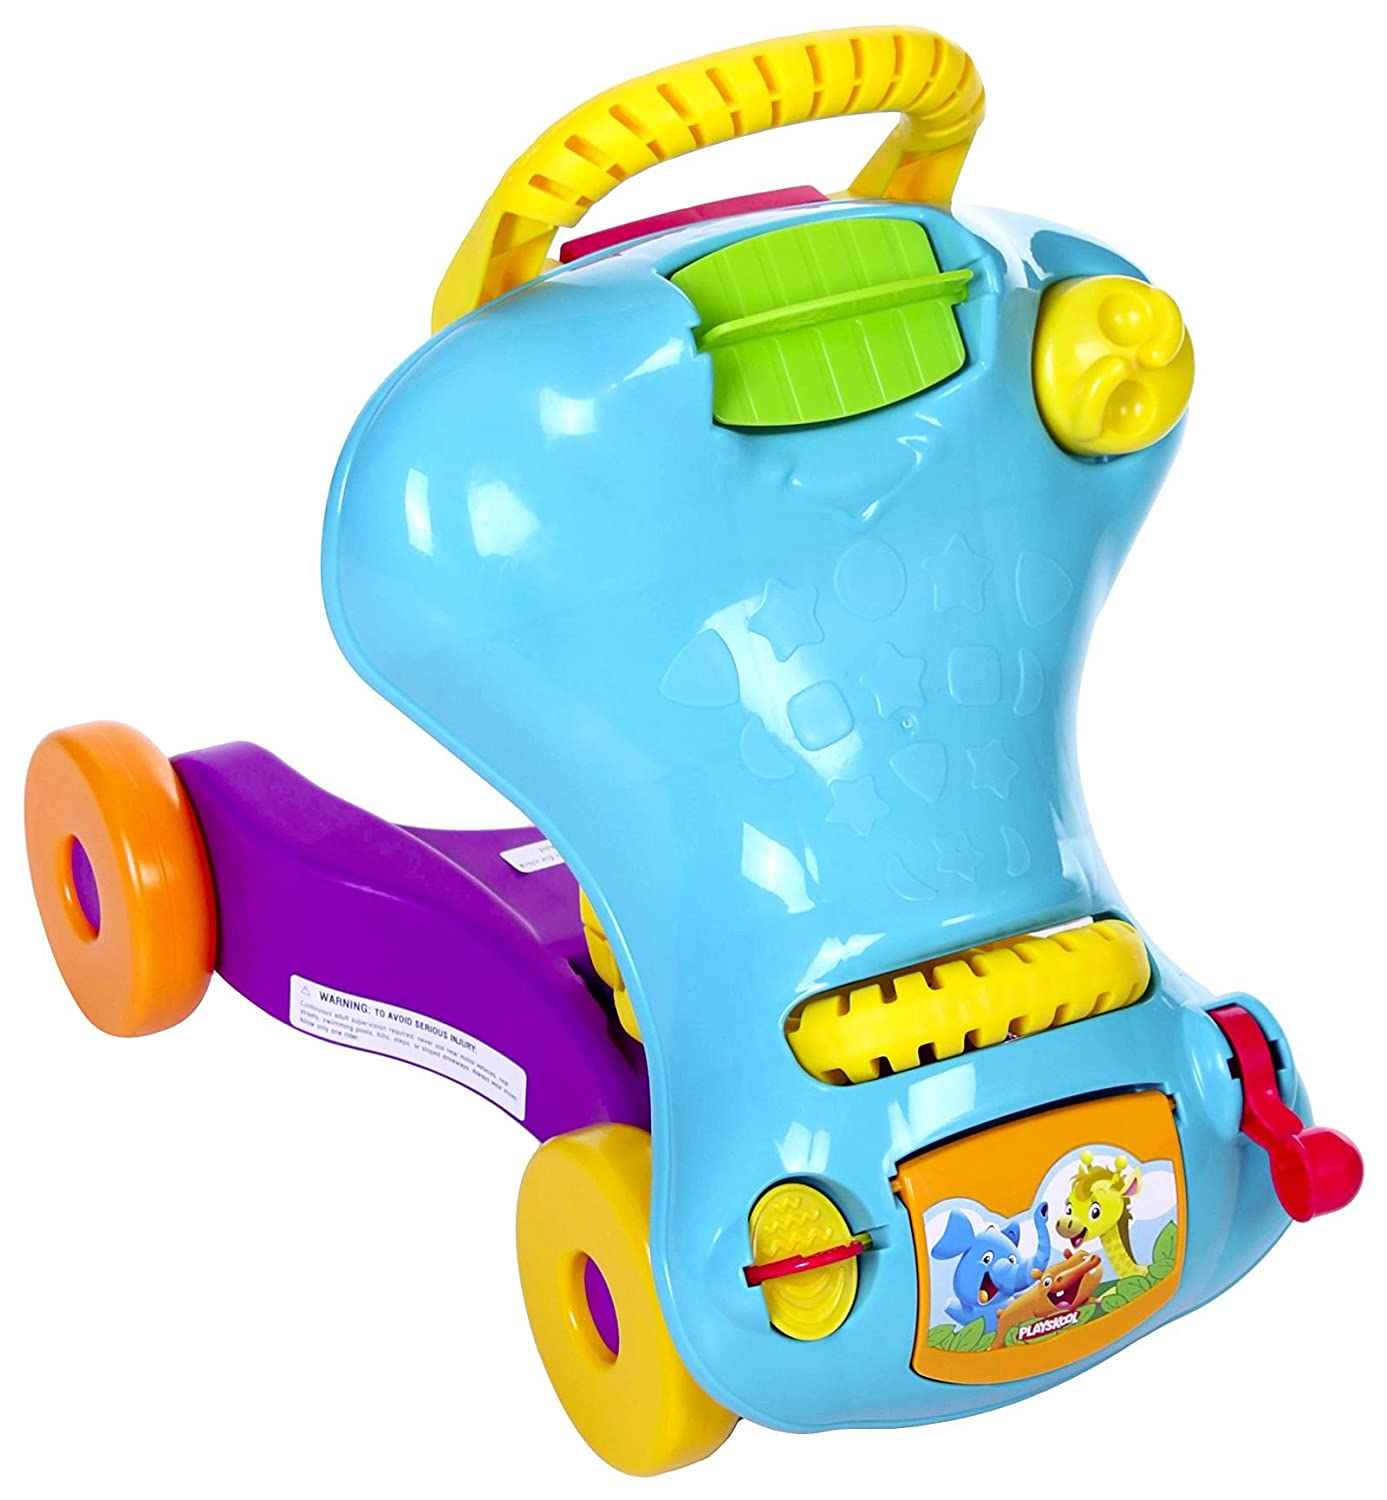 Playskool Paso Start Walk n Ride